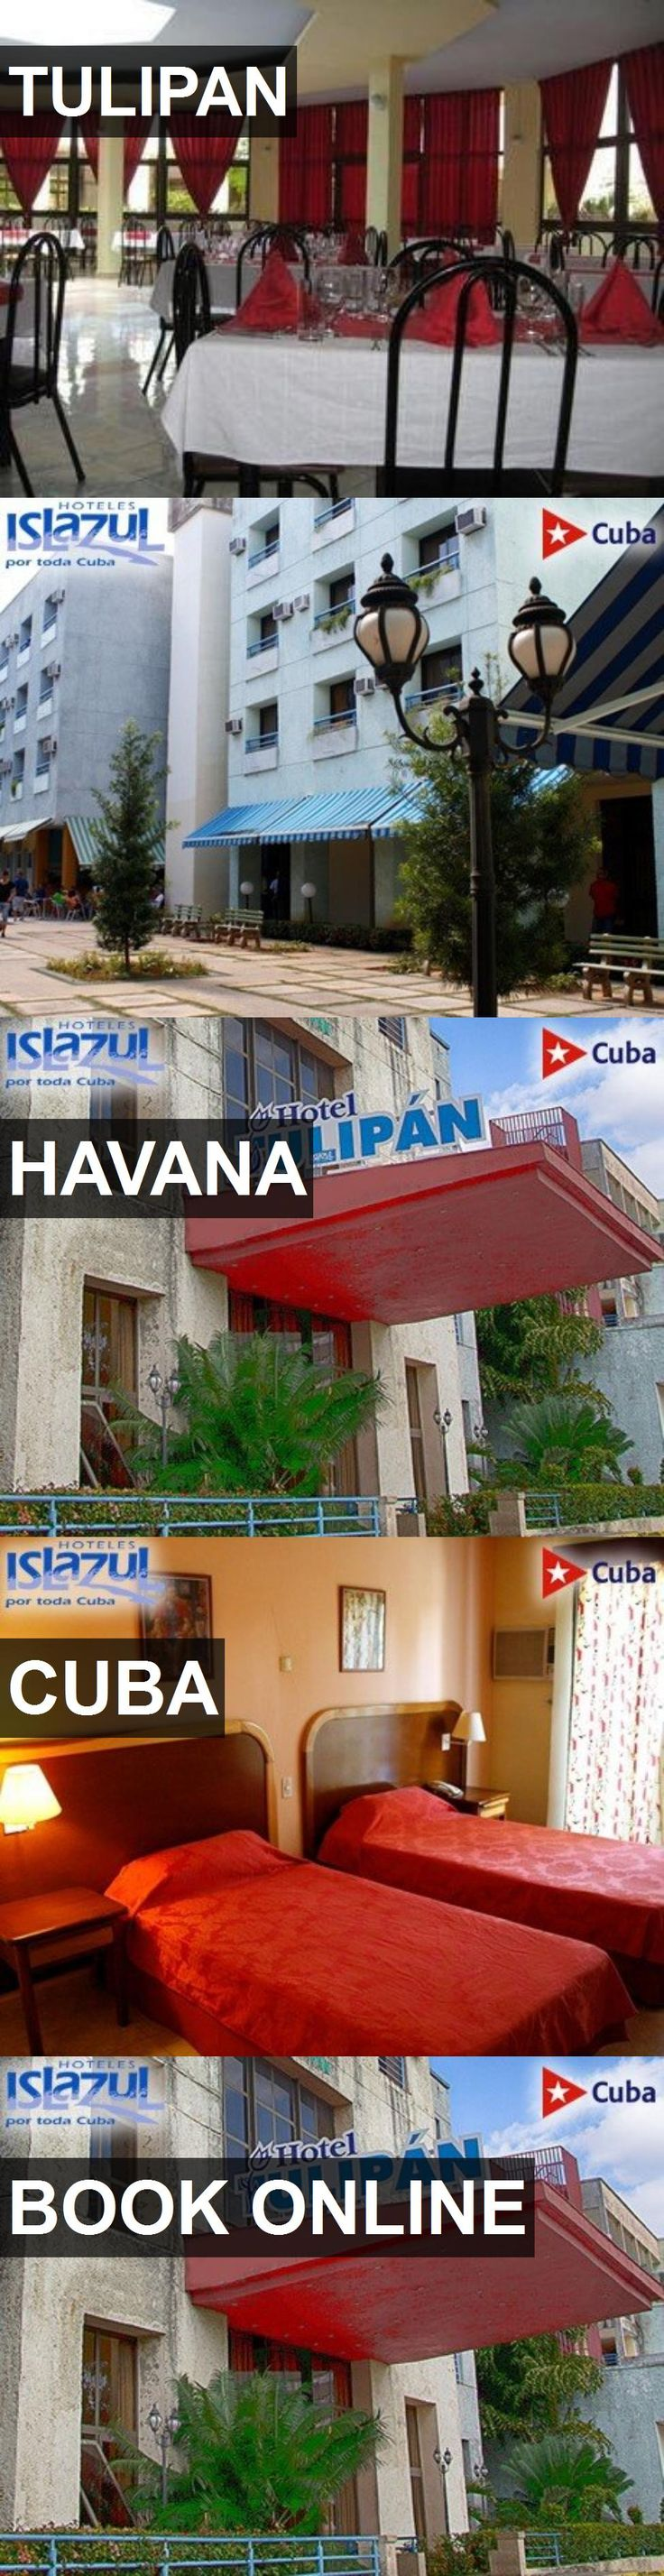 Hotel TULIPAN in Havana, Cuba. For more information, photos, reviews and best prices please follow the link. #Cuba #Havana #TULIPAN #hotel #travel #vacation